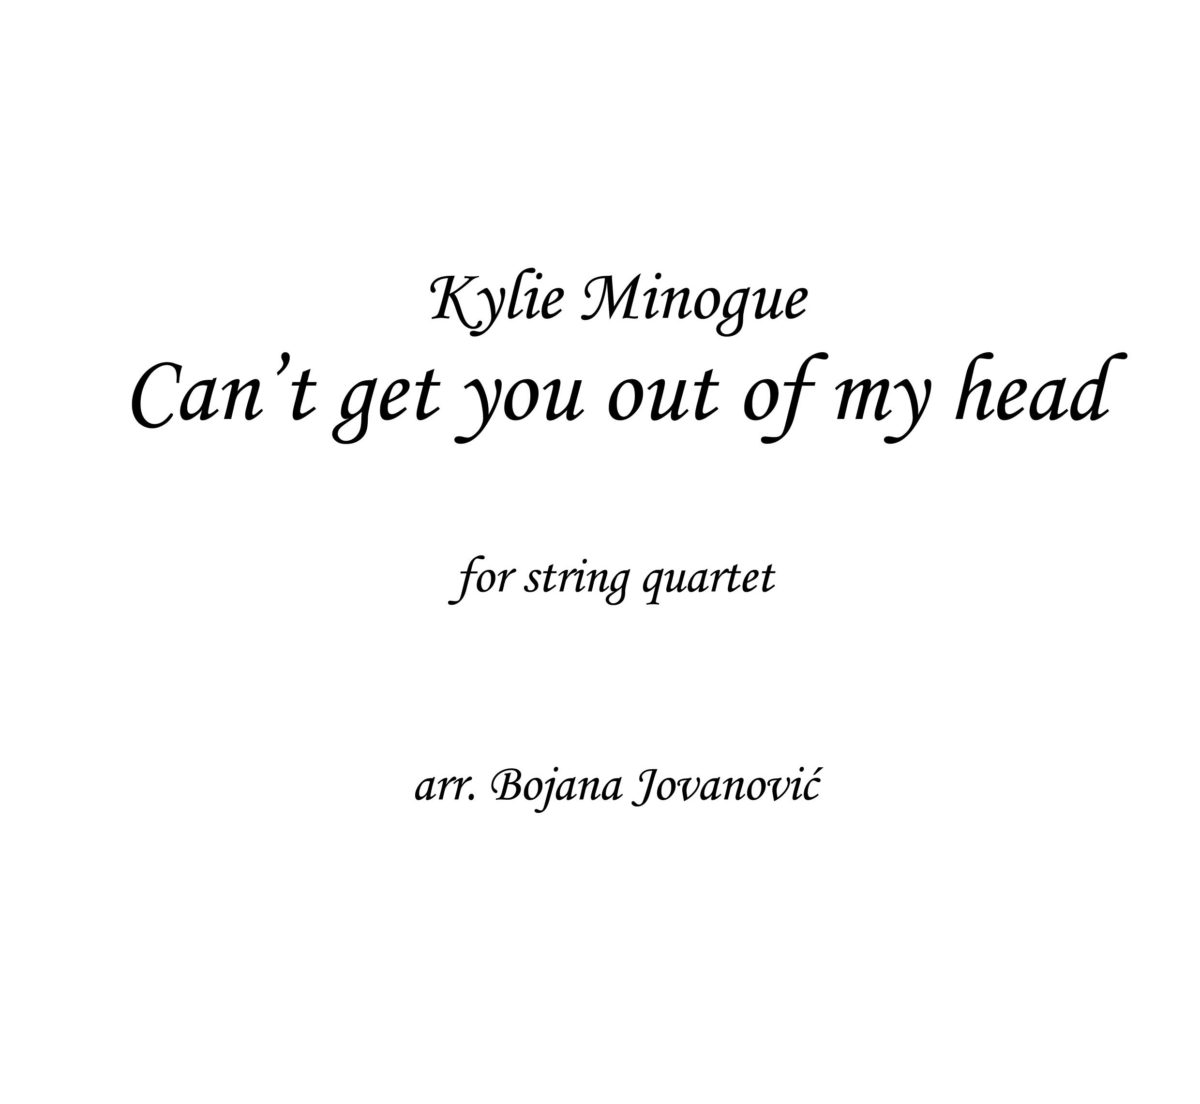 Can't get you out of my head (Kylie Minogue) - Sheet Music